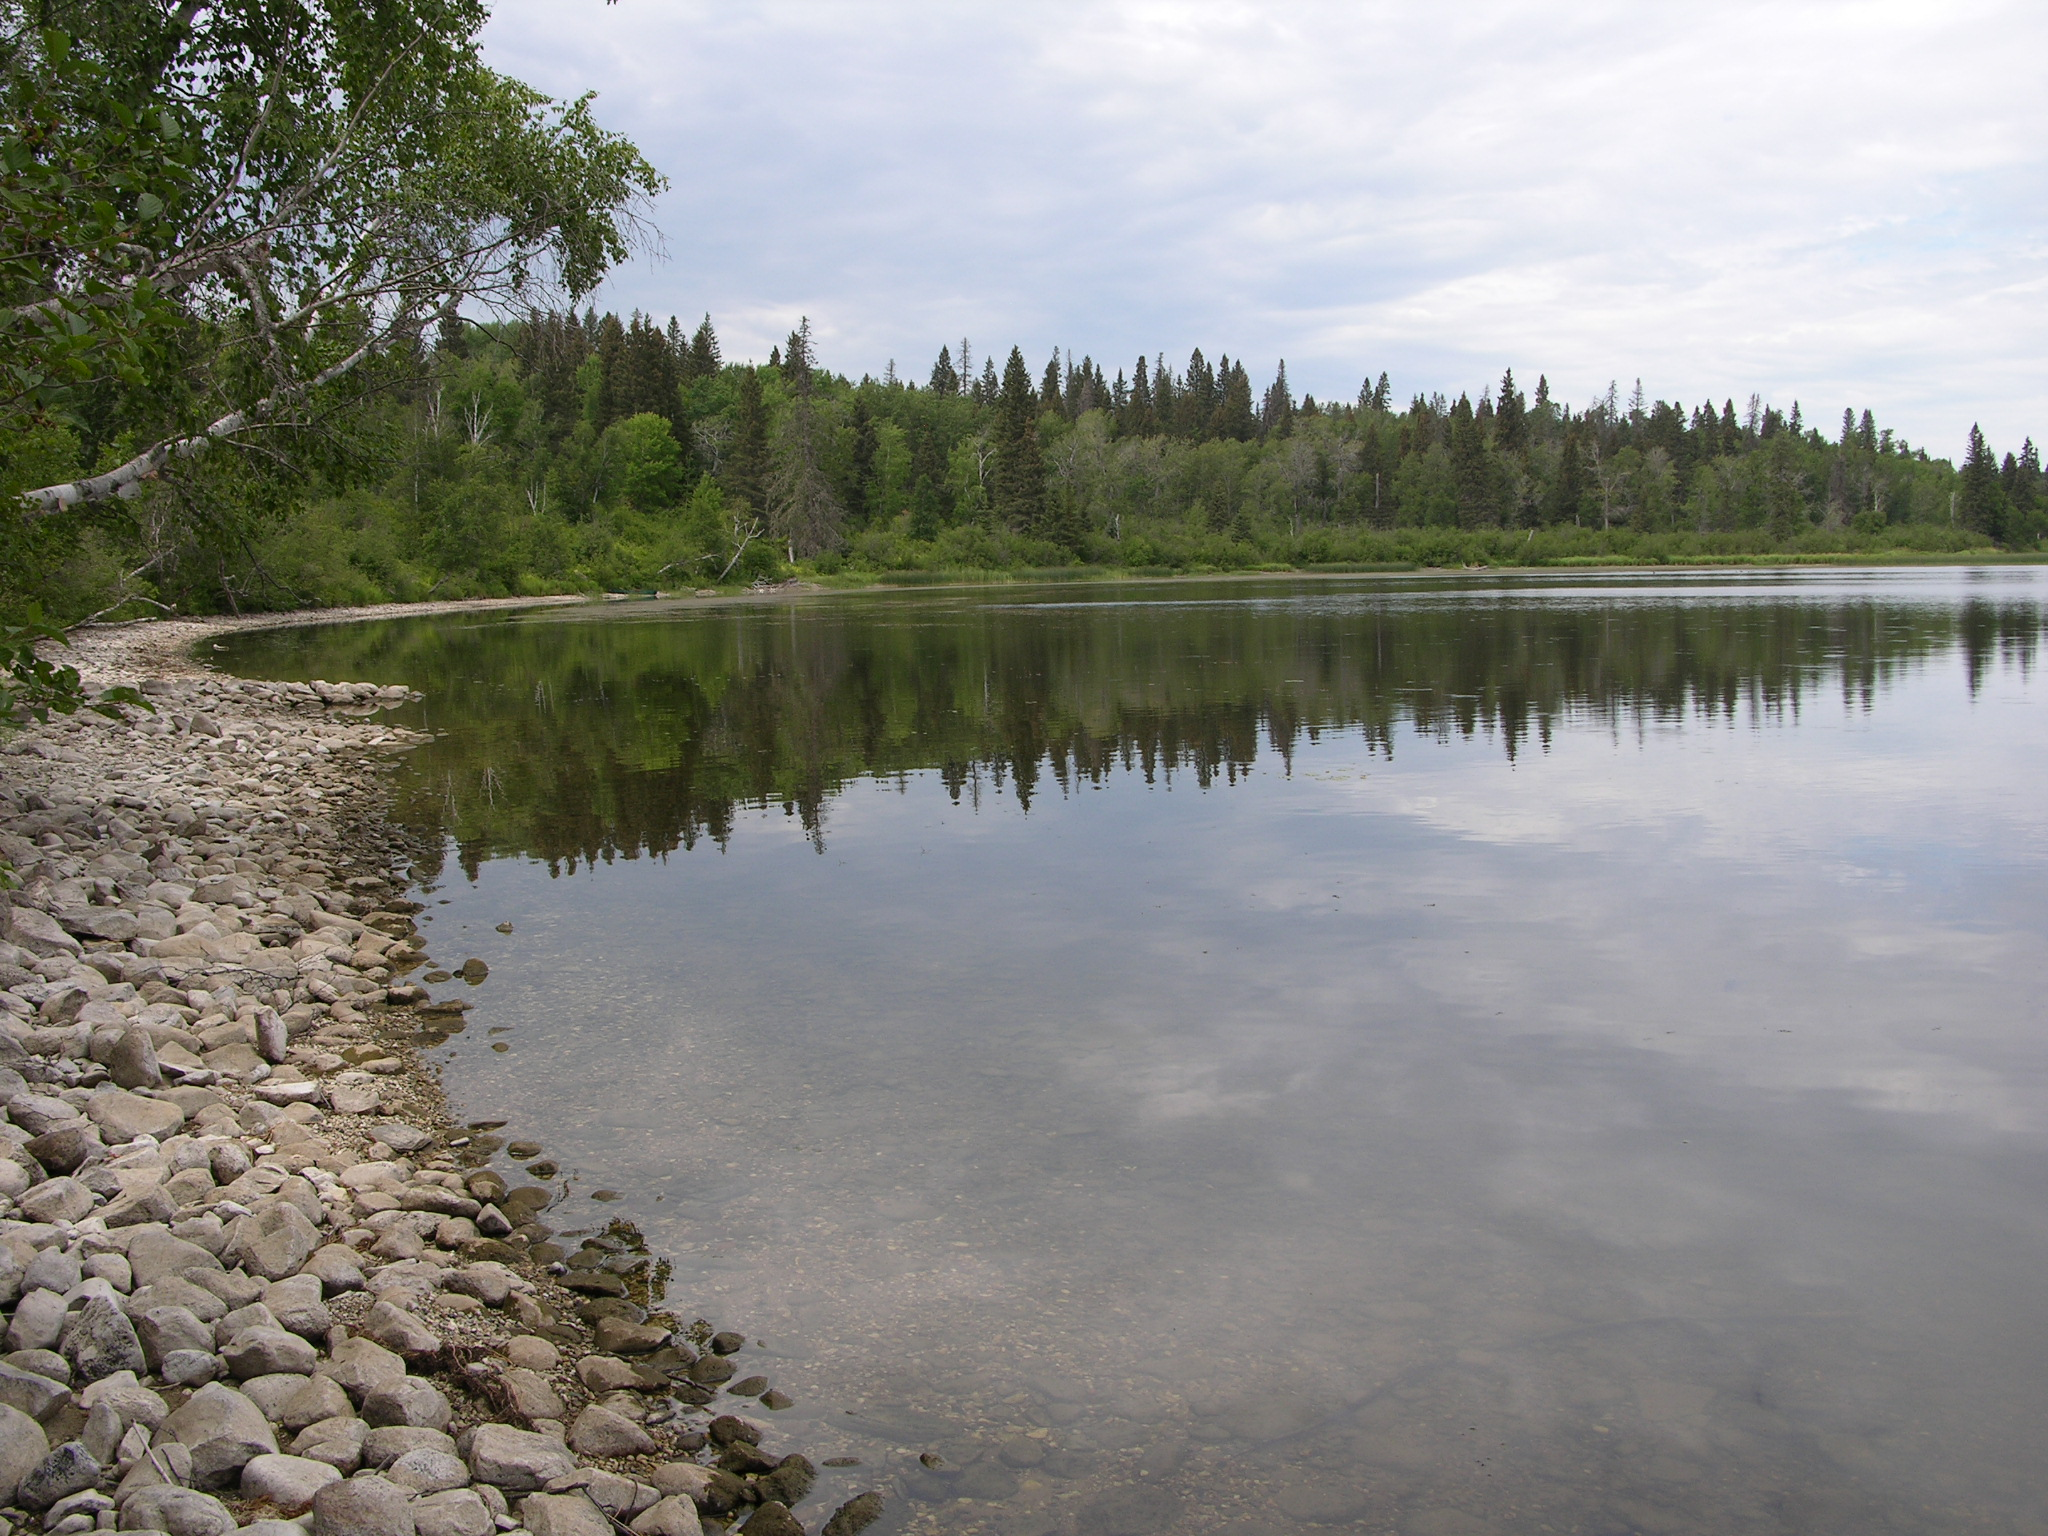 Shoreline of a Lake With